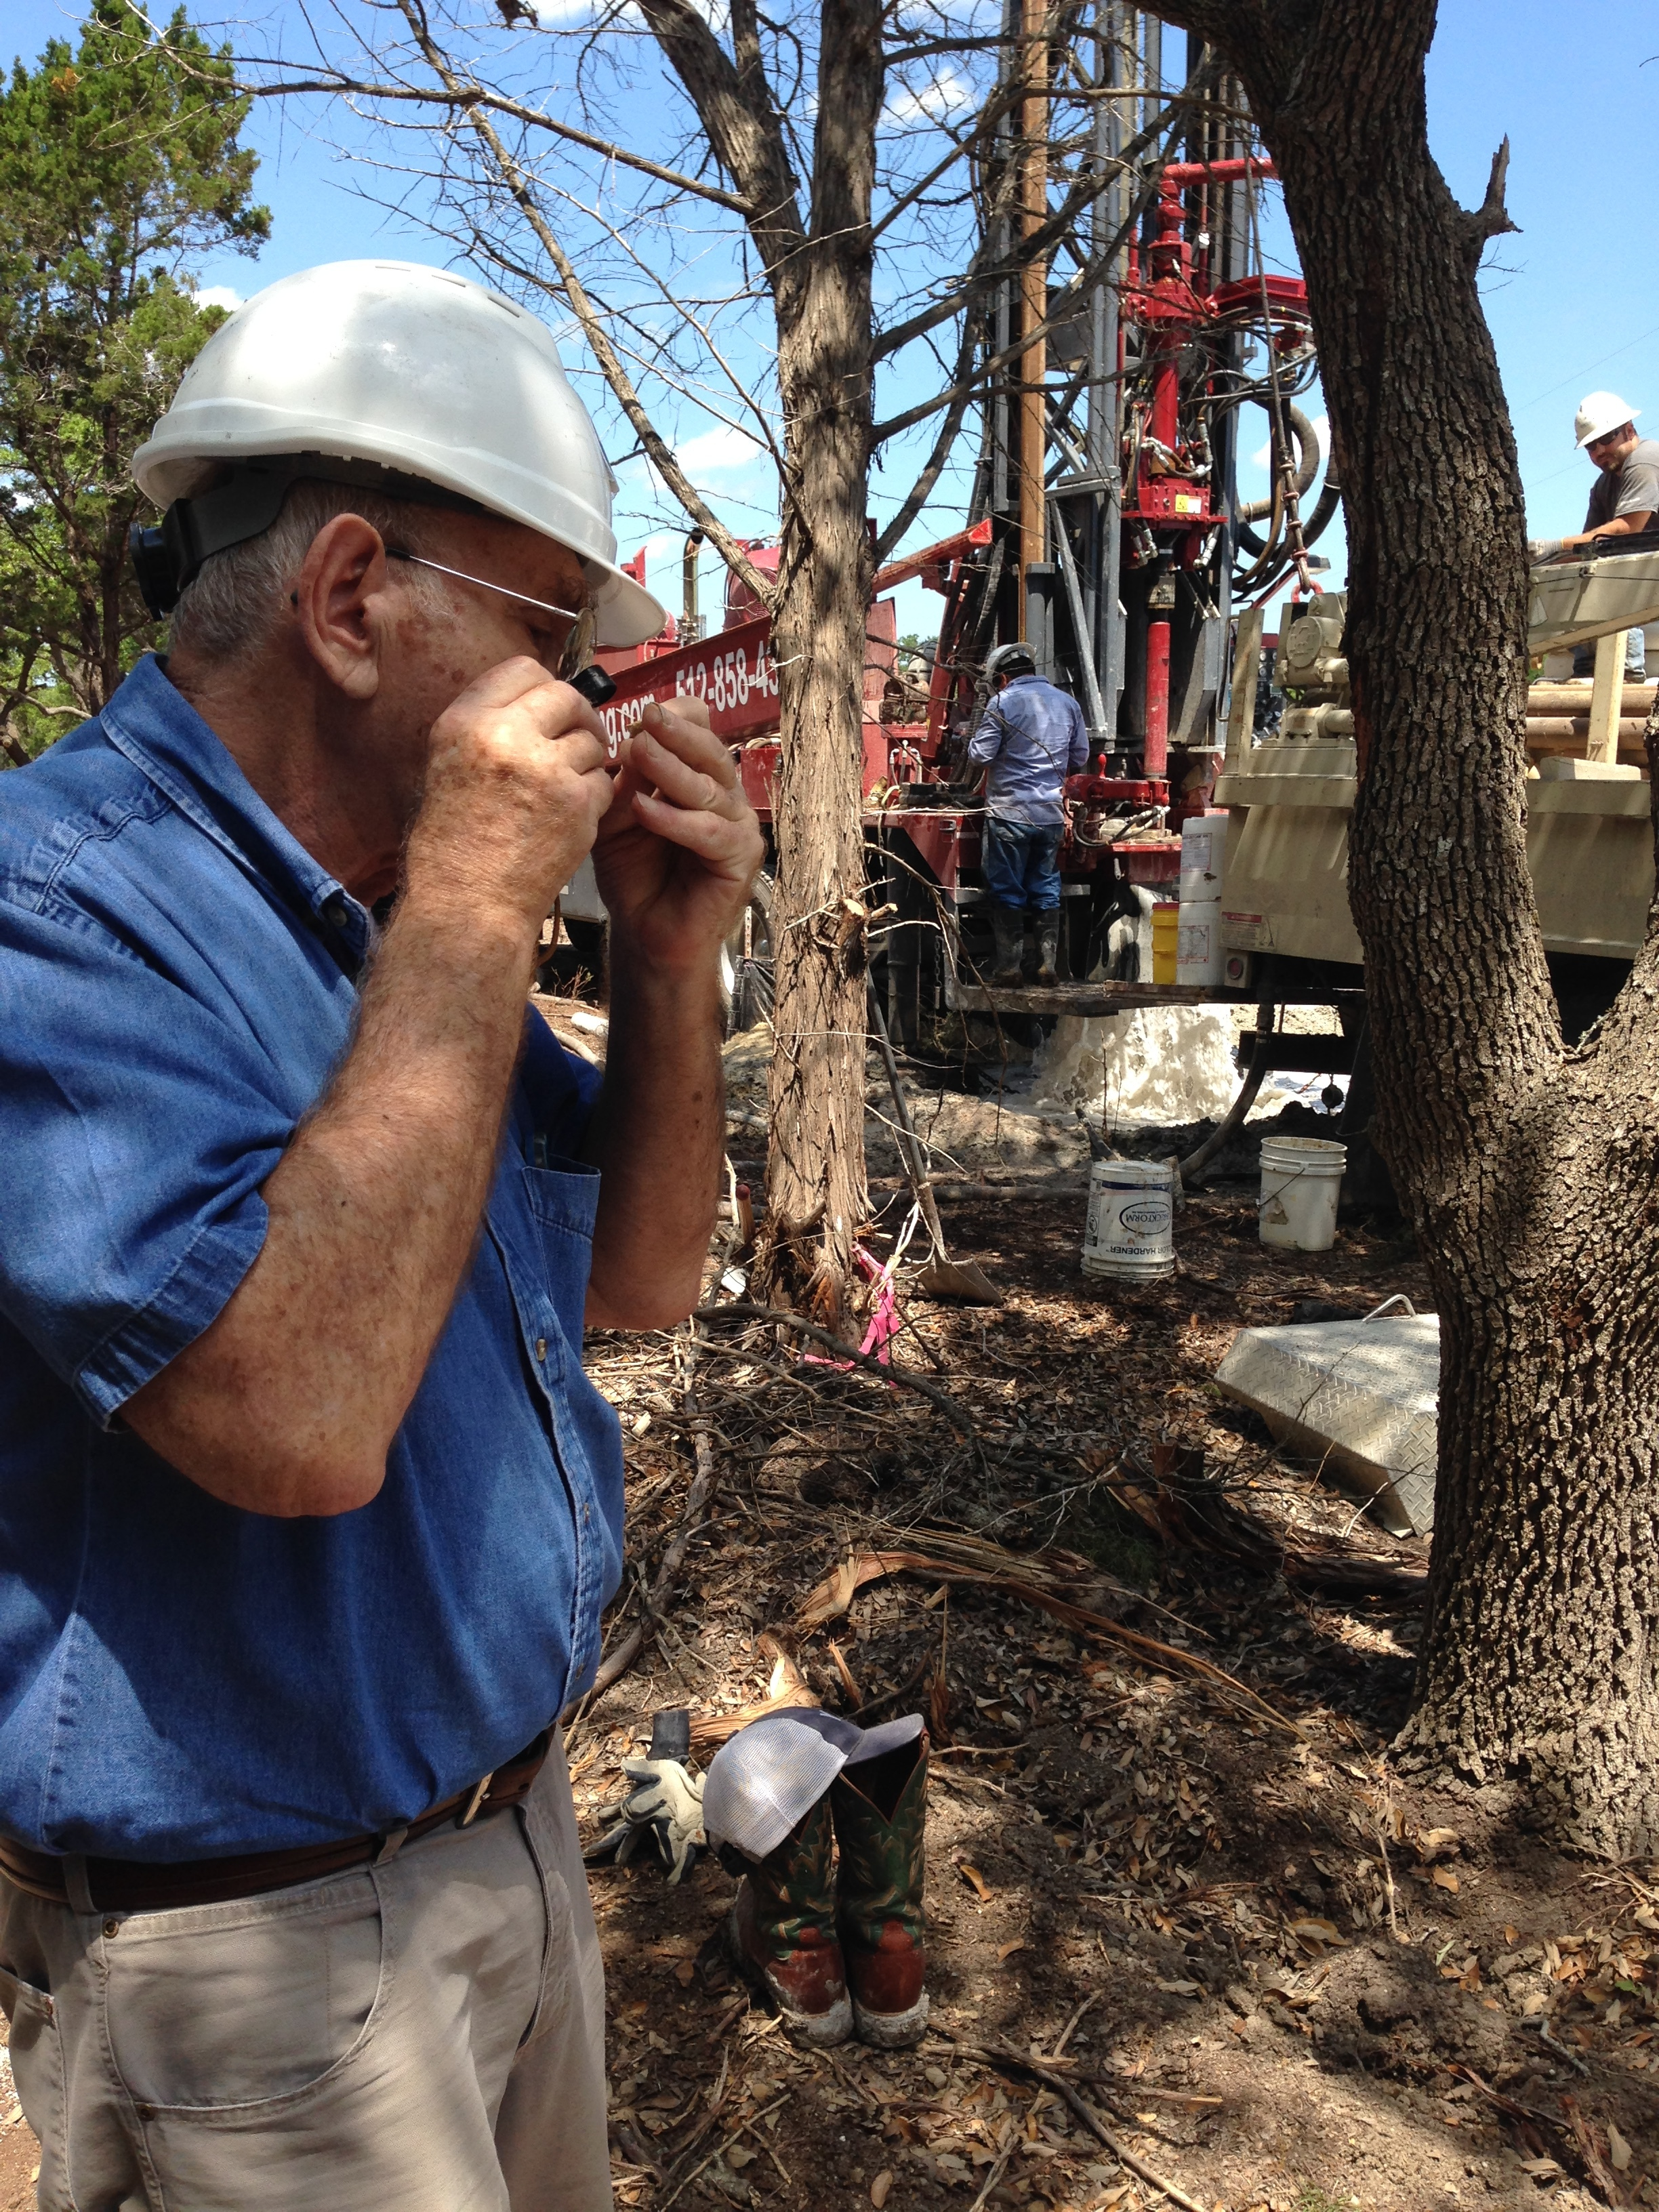 Geologist at well site